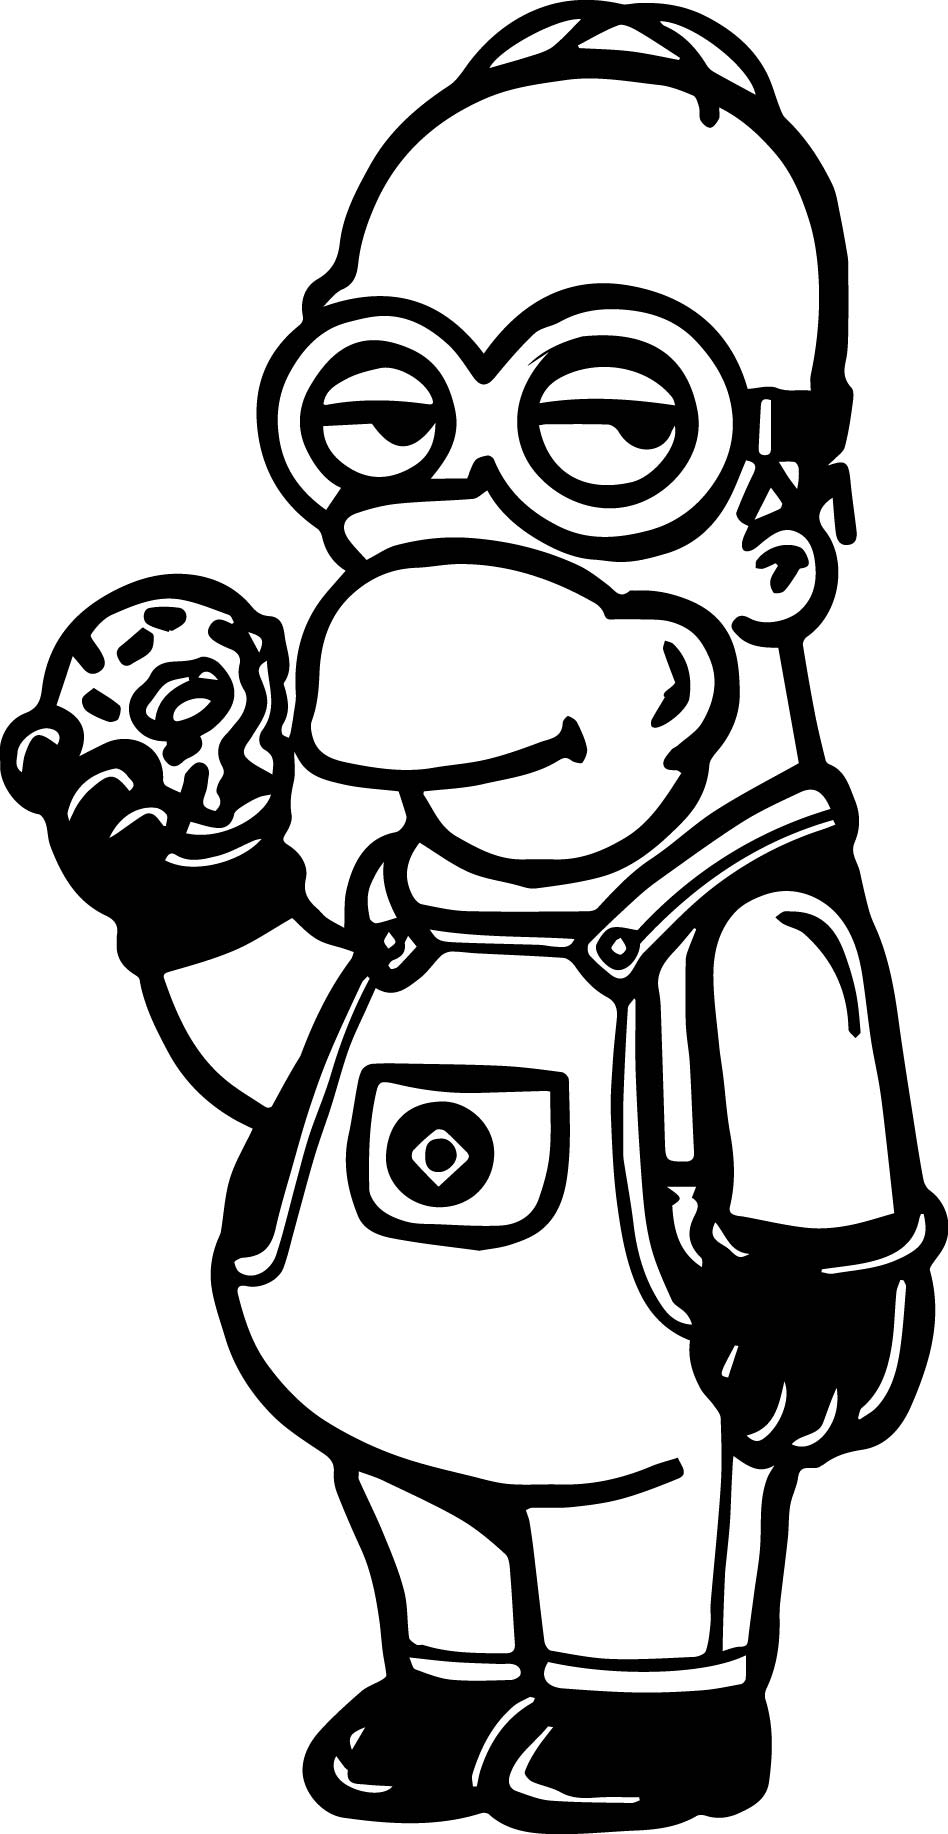 Minions bob coloring page for Minion coloring pages free